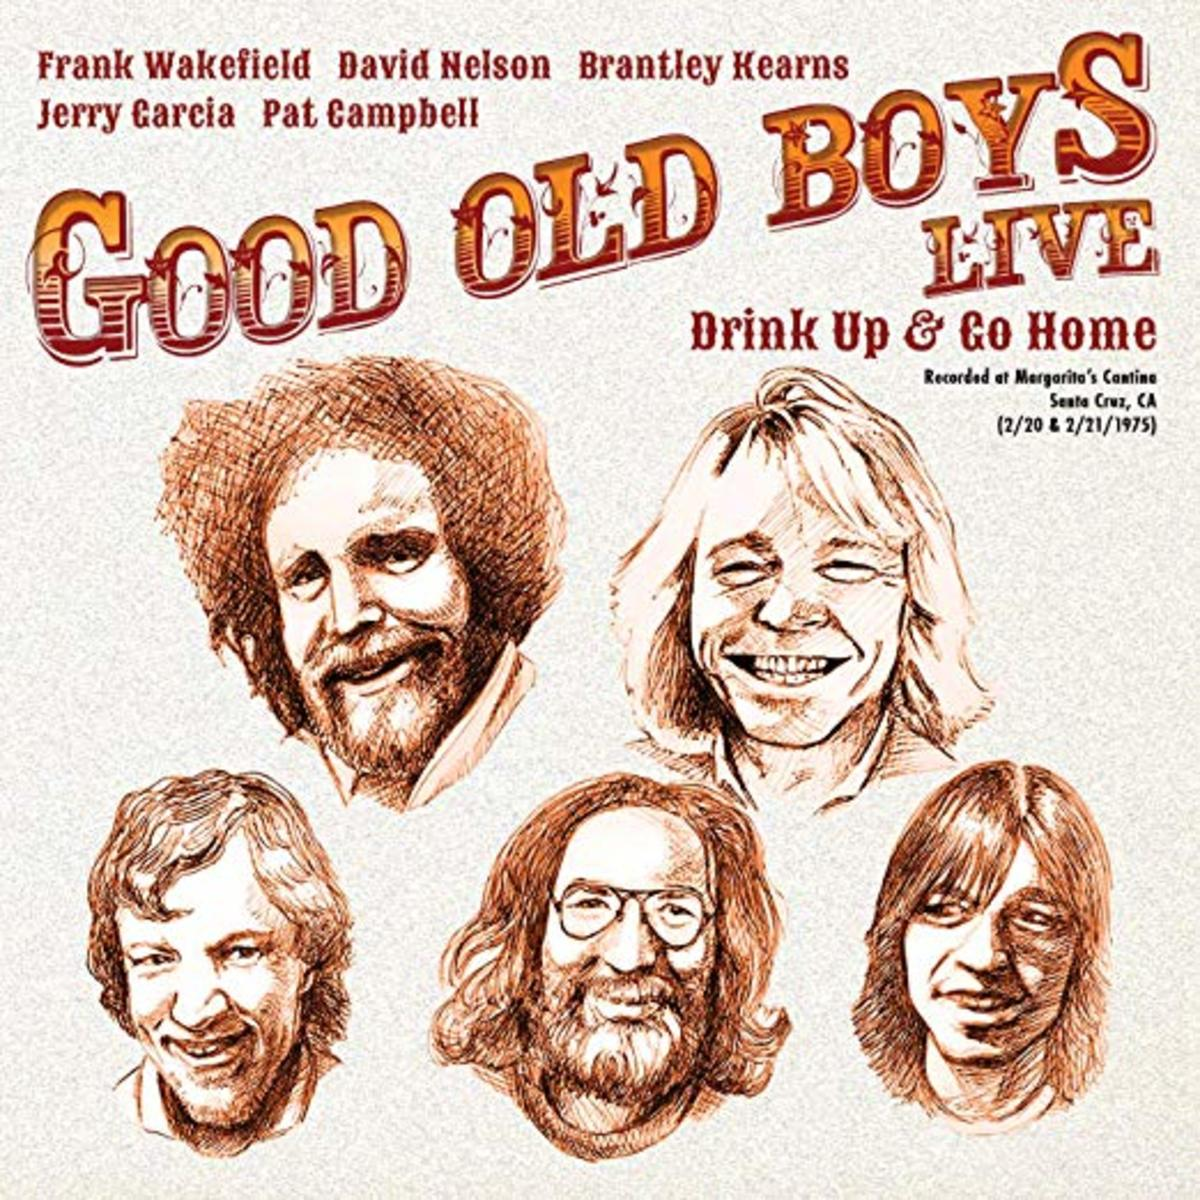 The Good Old Boys live album, which had the lineup (clockwise from top left): David Nelson, Frank Wakefield, Brantley Kearns, Jerry Garcia and Pat Campbell.